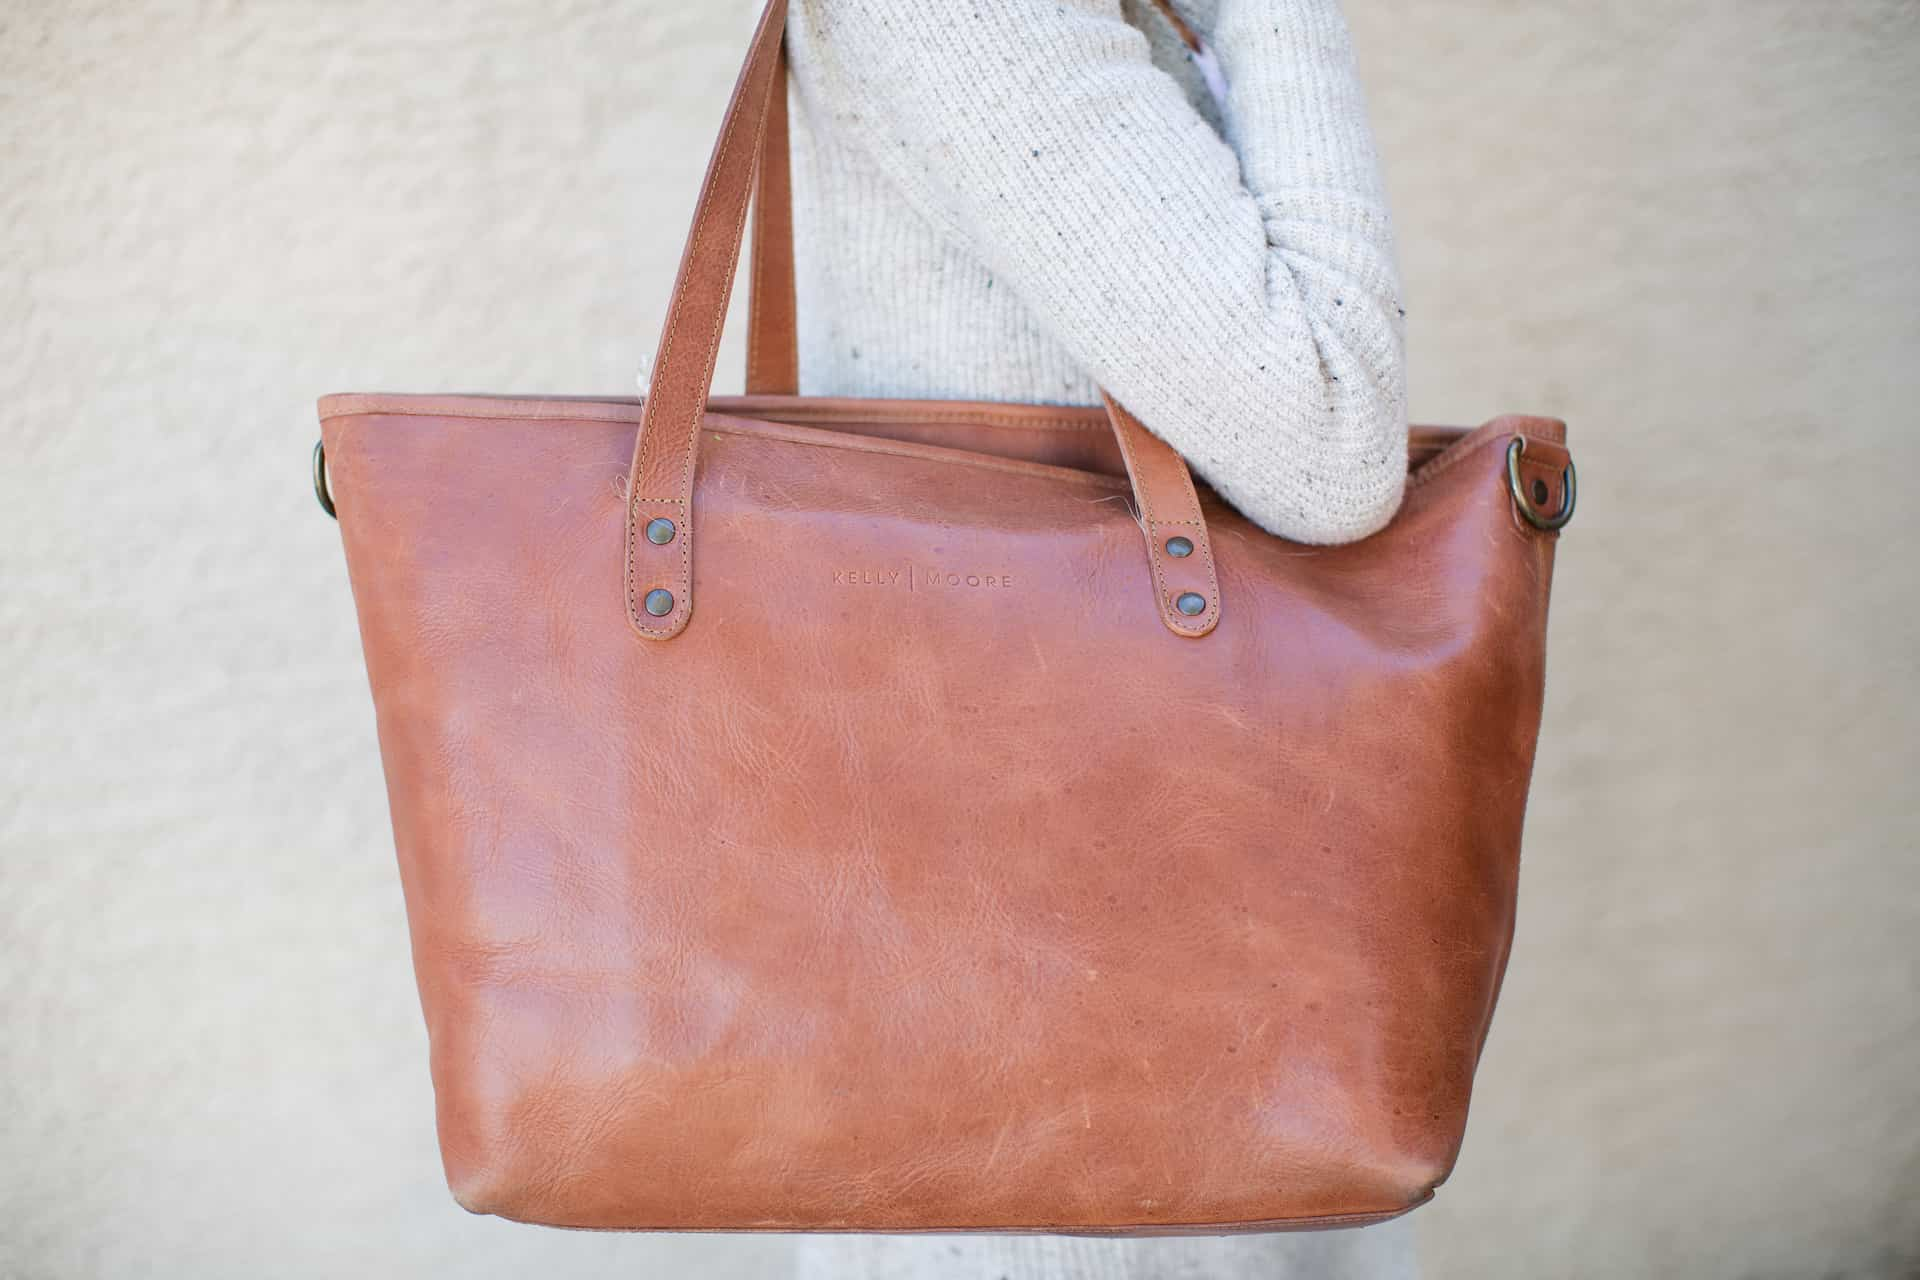 Best Camera Bags for Women - Kelly Moore Weekender Tote